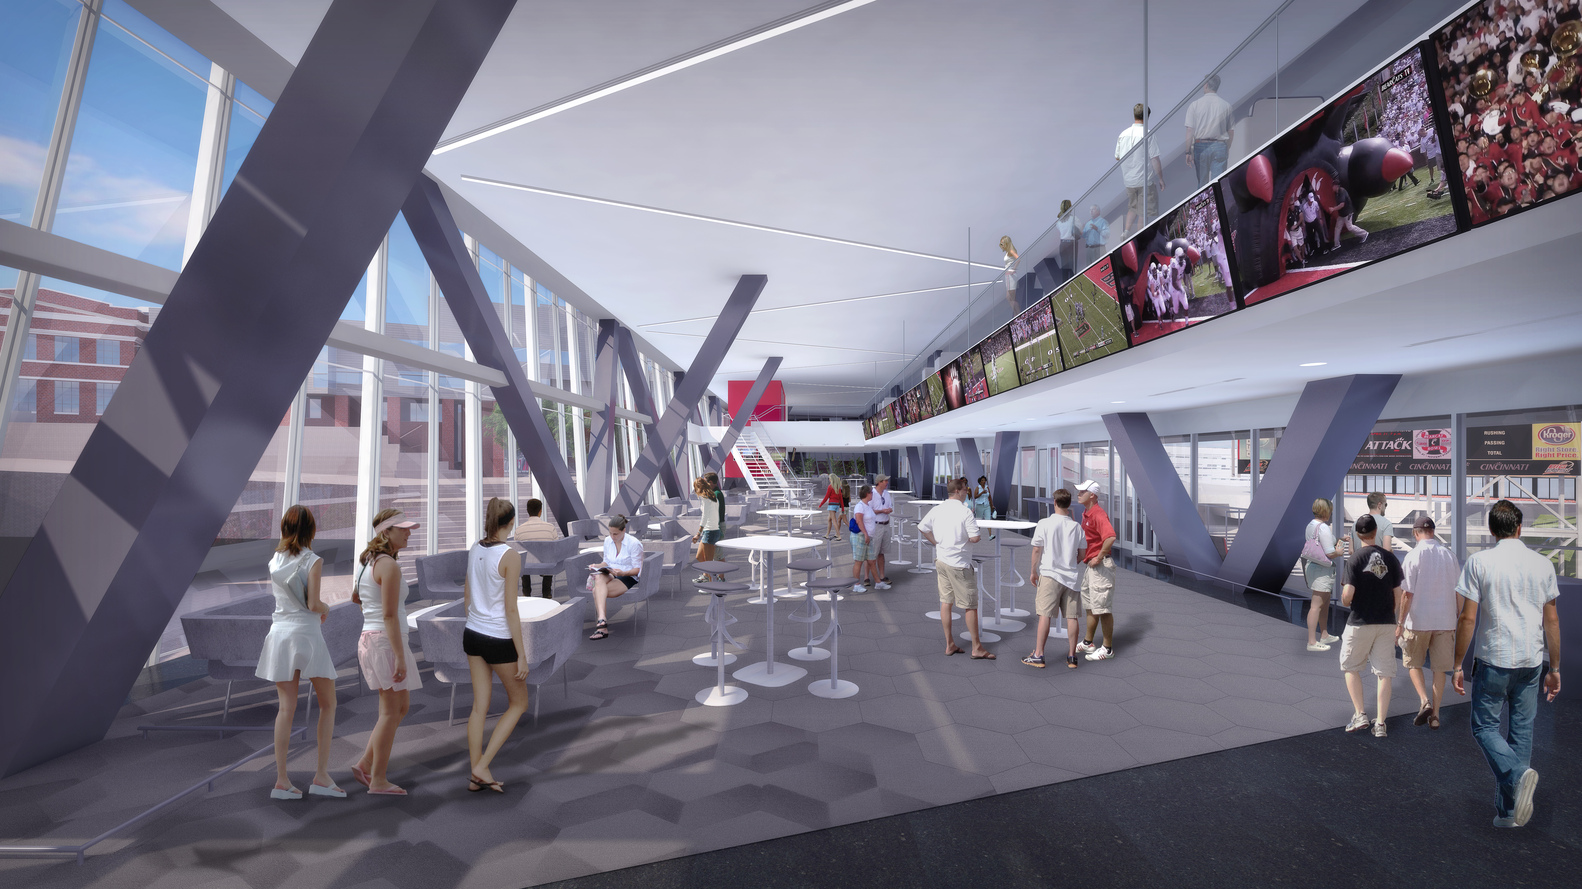 ARO And Heery Design Nippert Stadium Expansion For University Of Cincinnati,Courtesy  Of The University